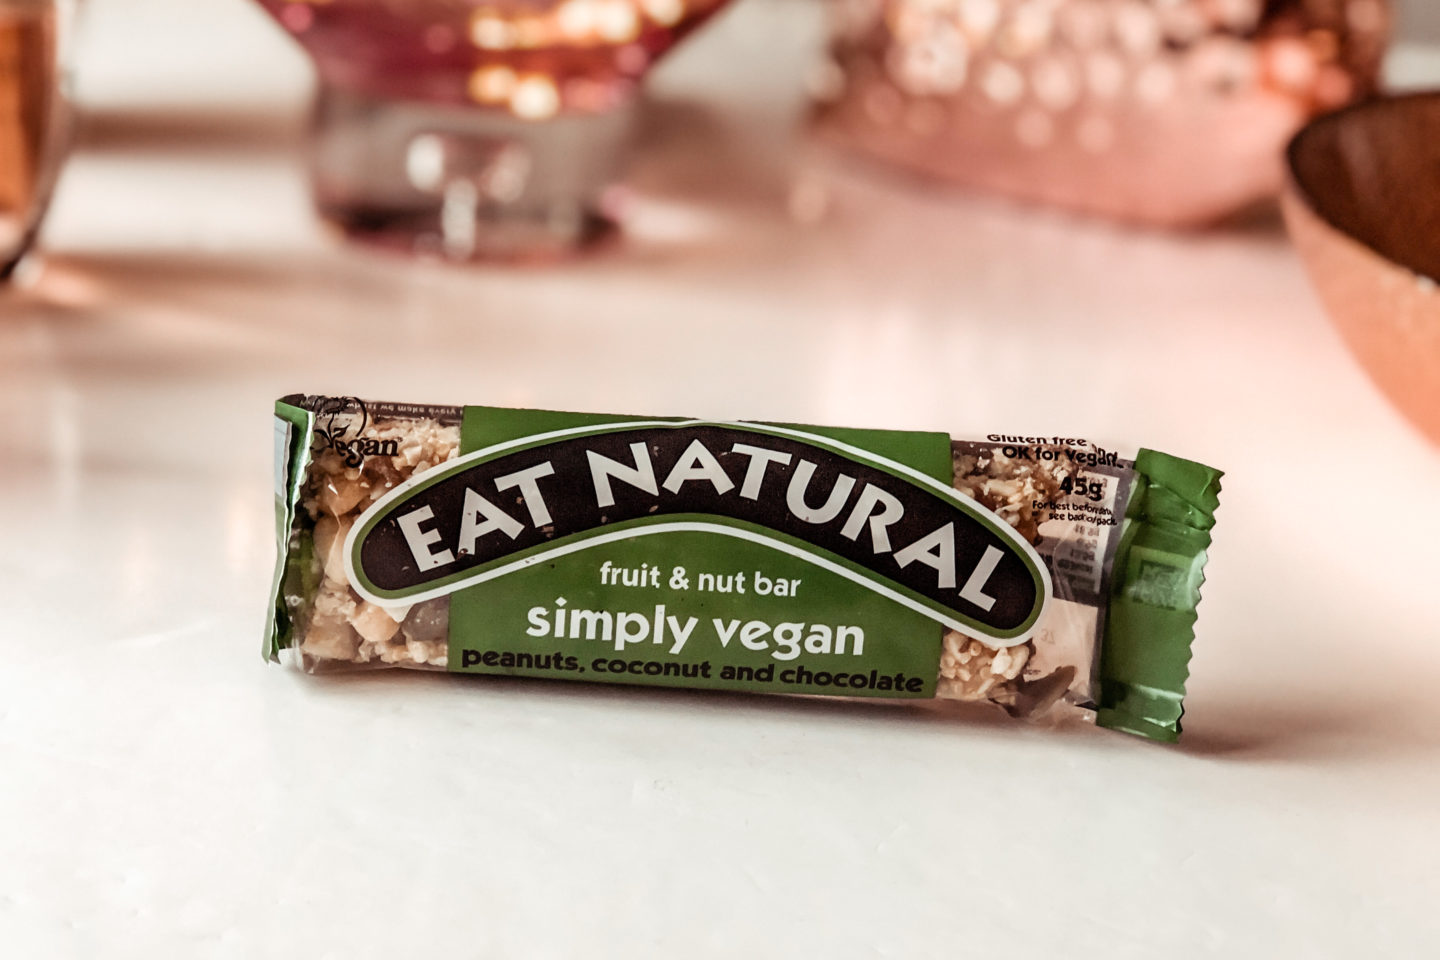 Eat Natural Simply Vegan peanuts, coconut and chocolate bar - January 2020 Degusta Box